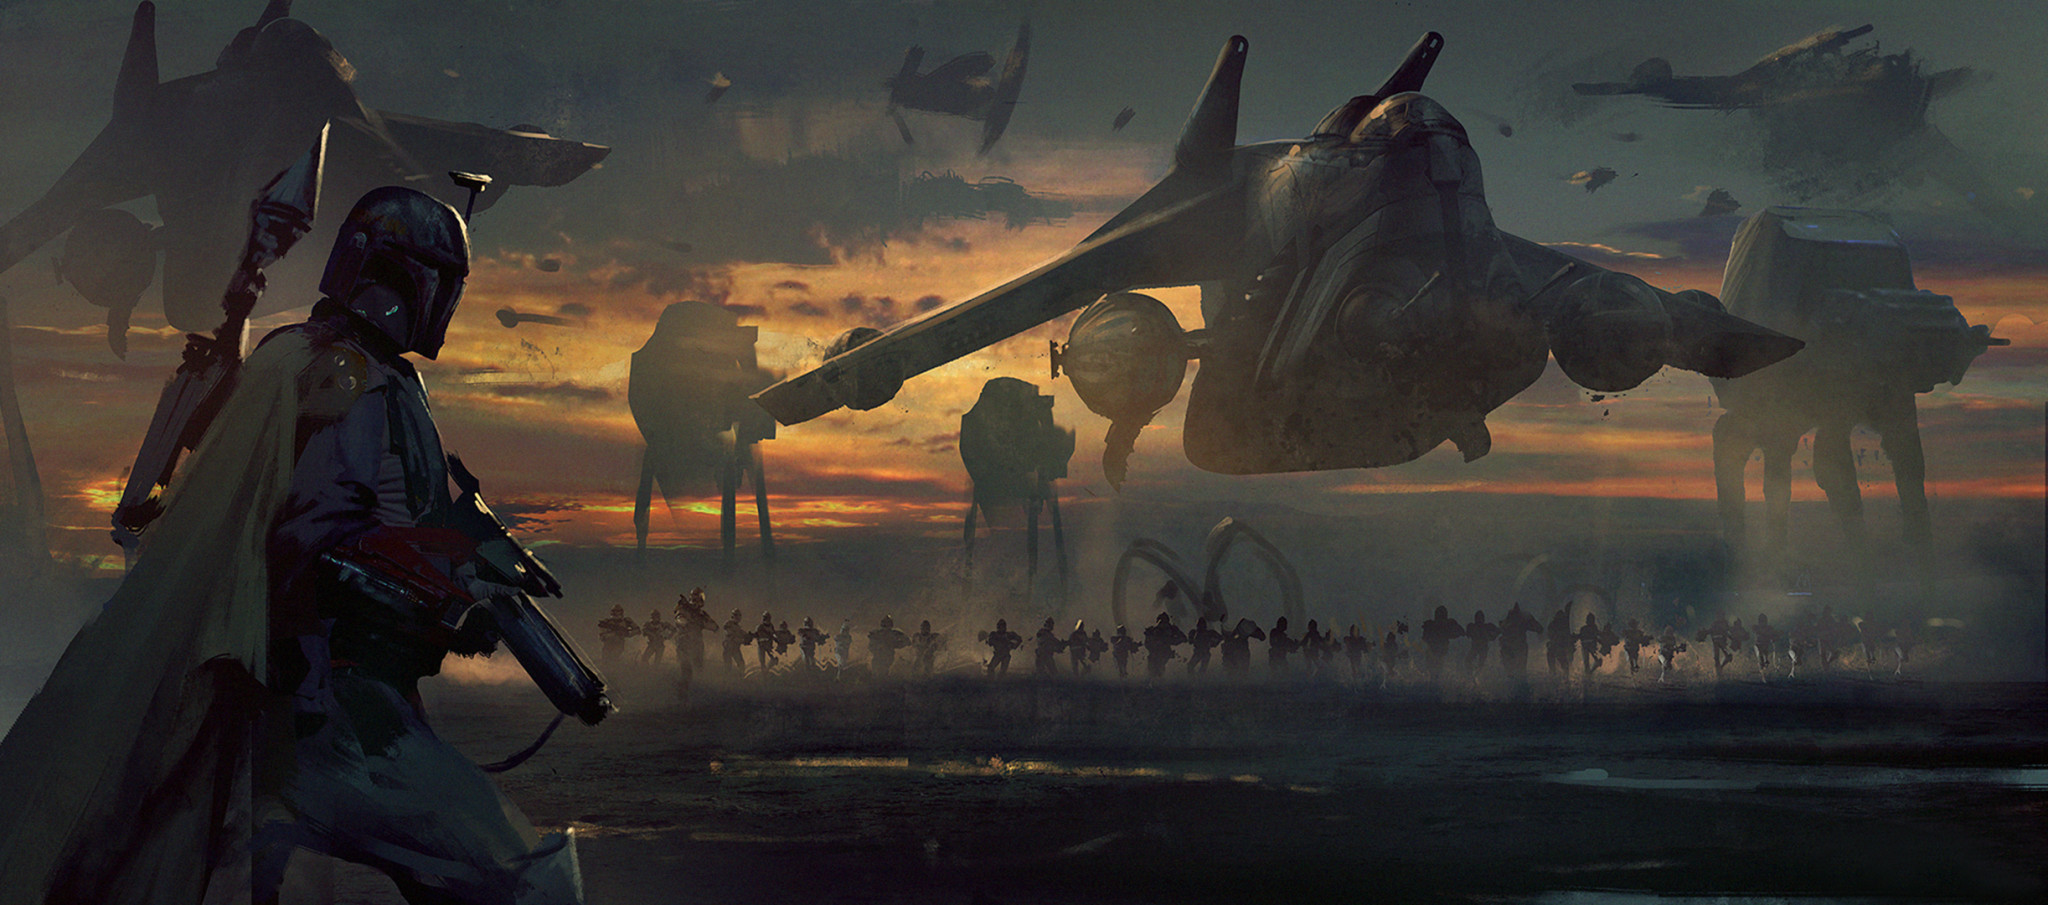 Second Star Wars Anthology Film to be About Boba Fett 2048x905